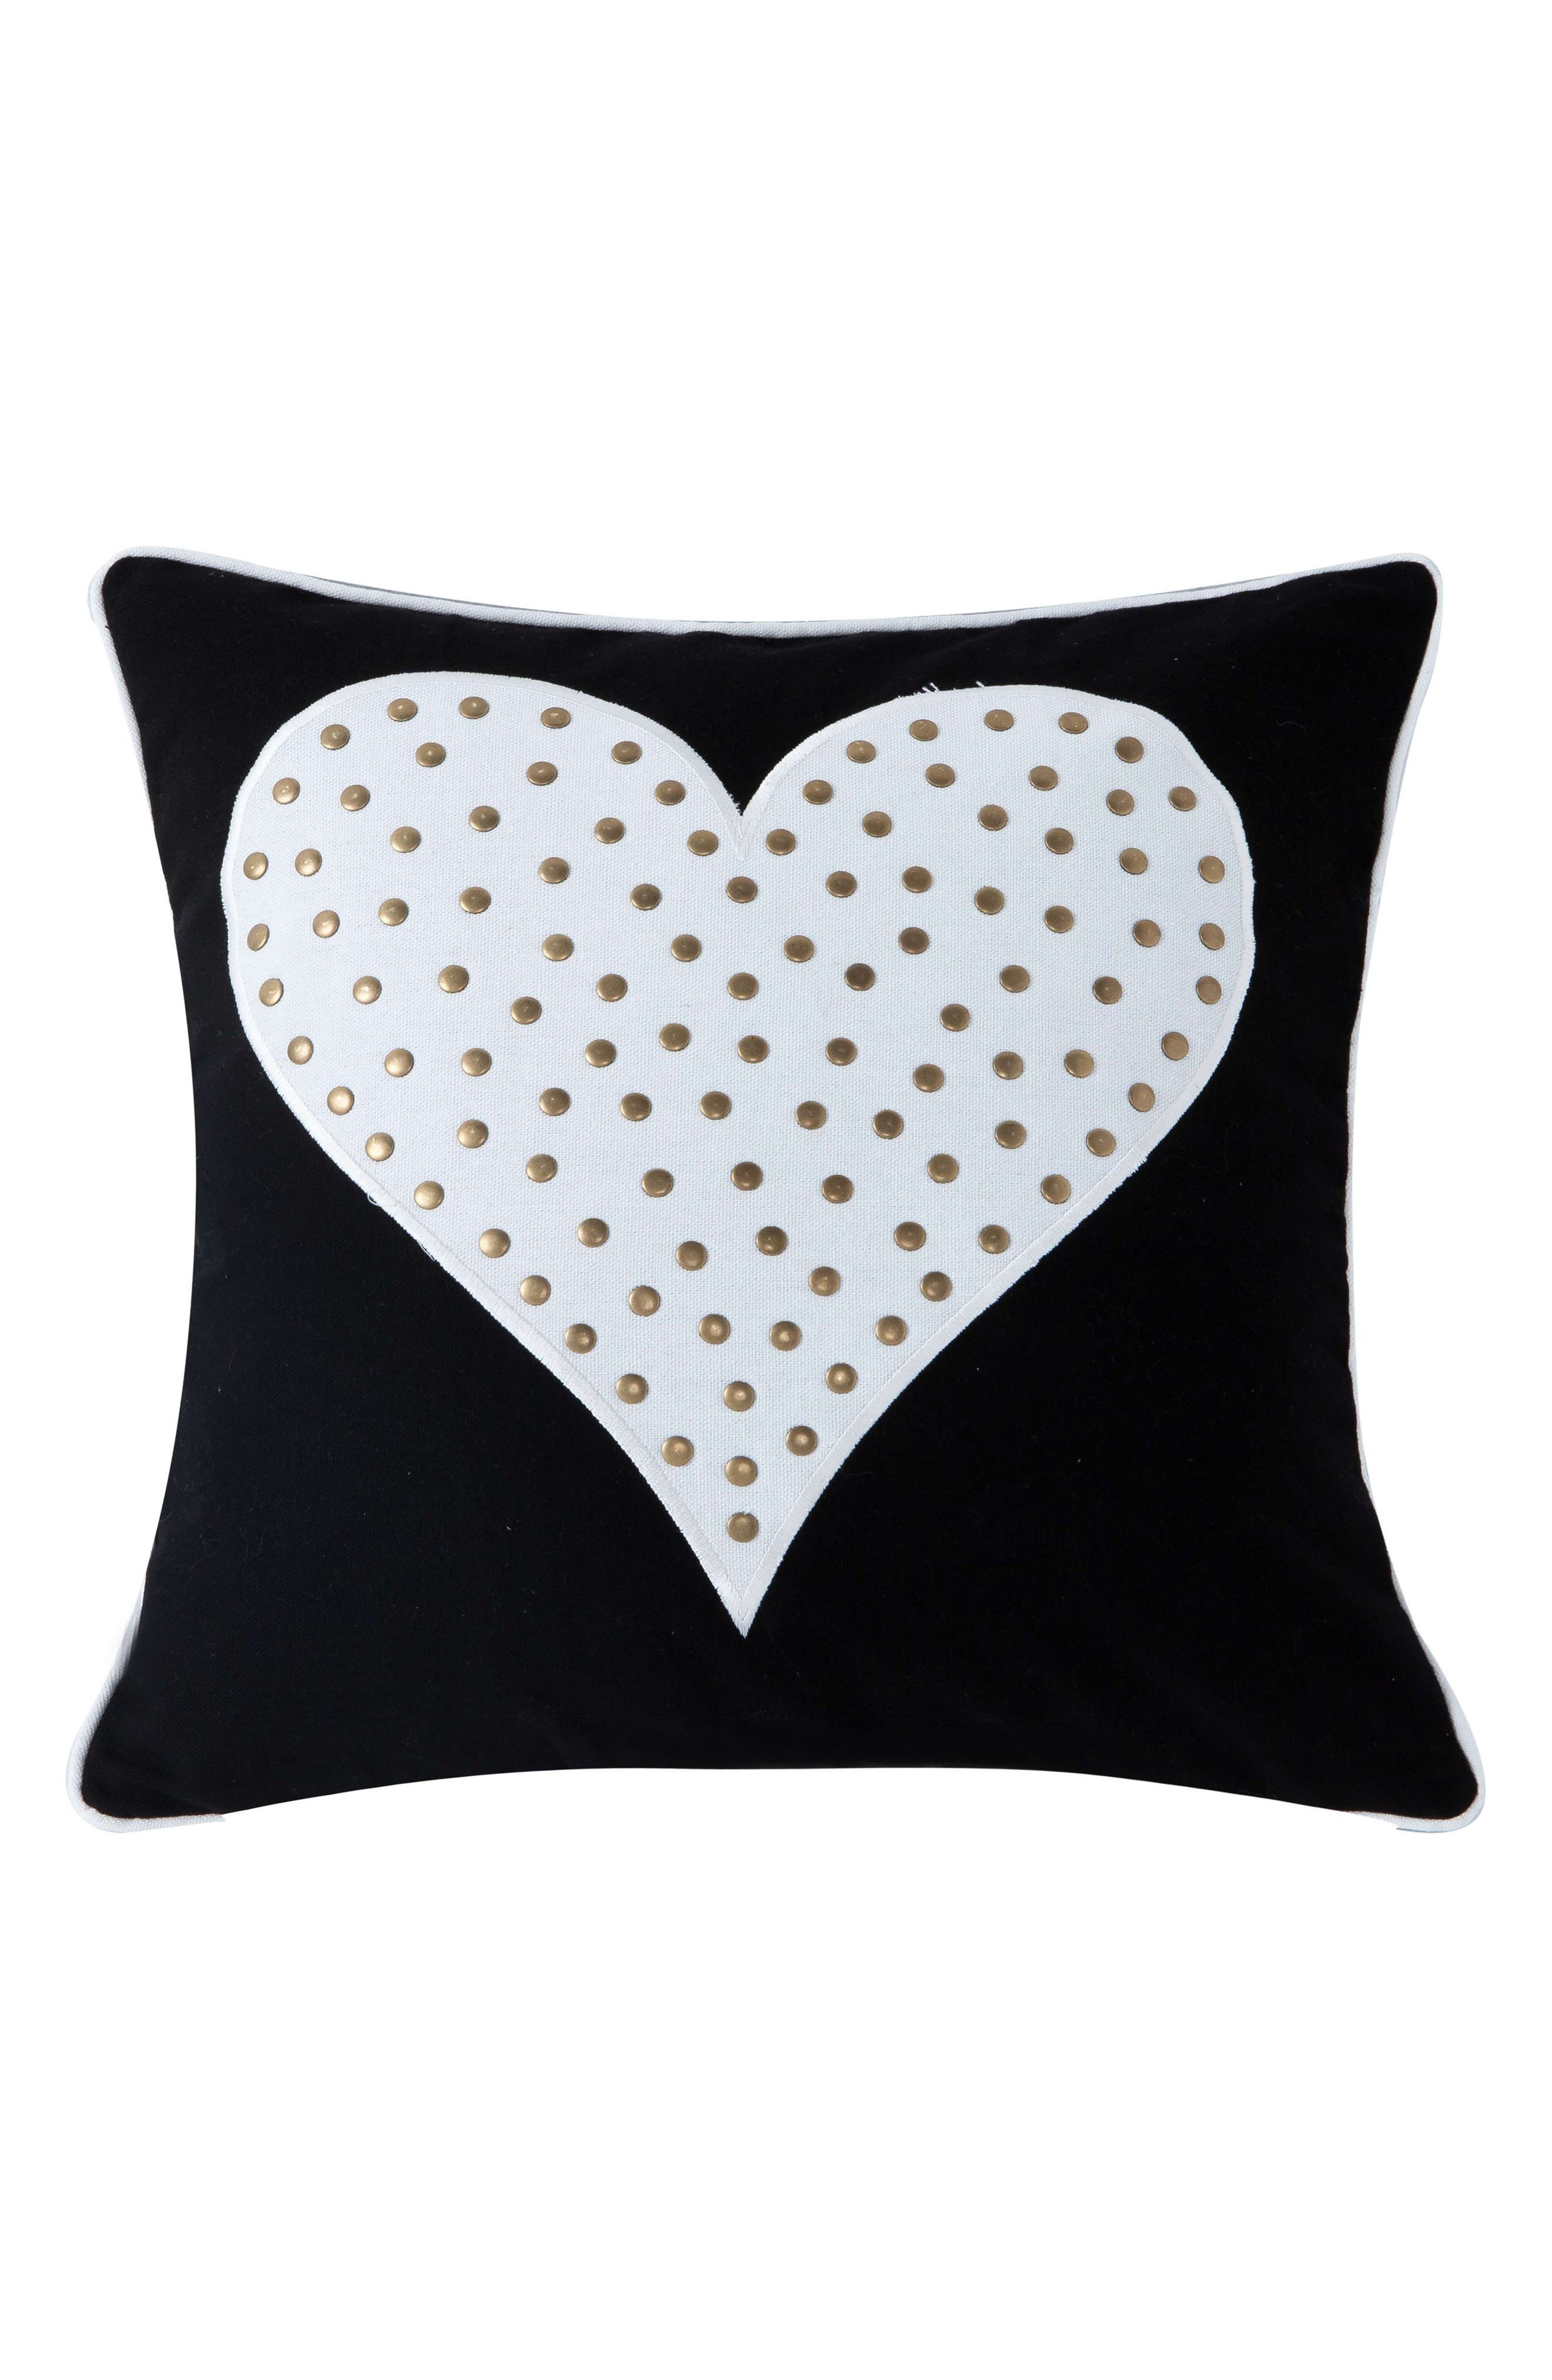 Stellah Studded Heart Accent Pillow,                             Main thumbnail 1, color,                             001